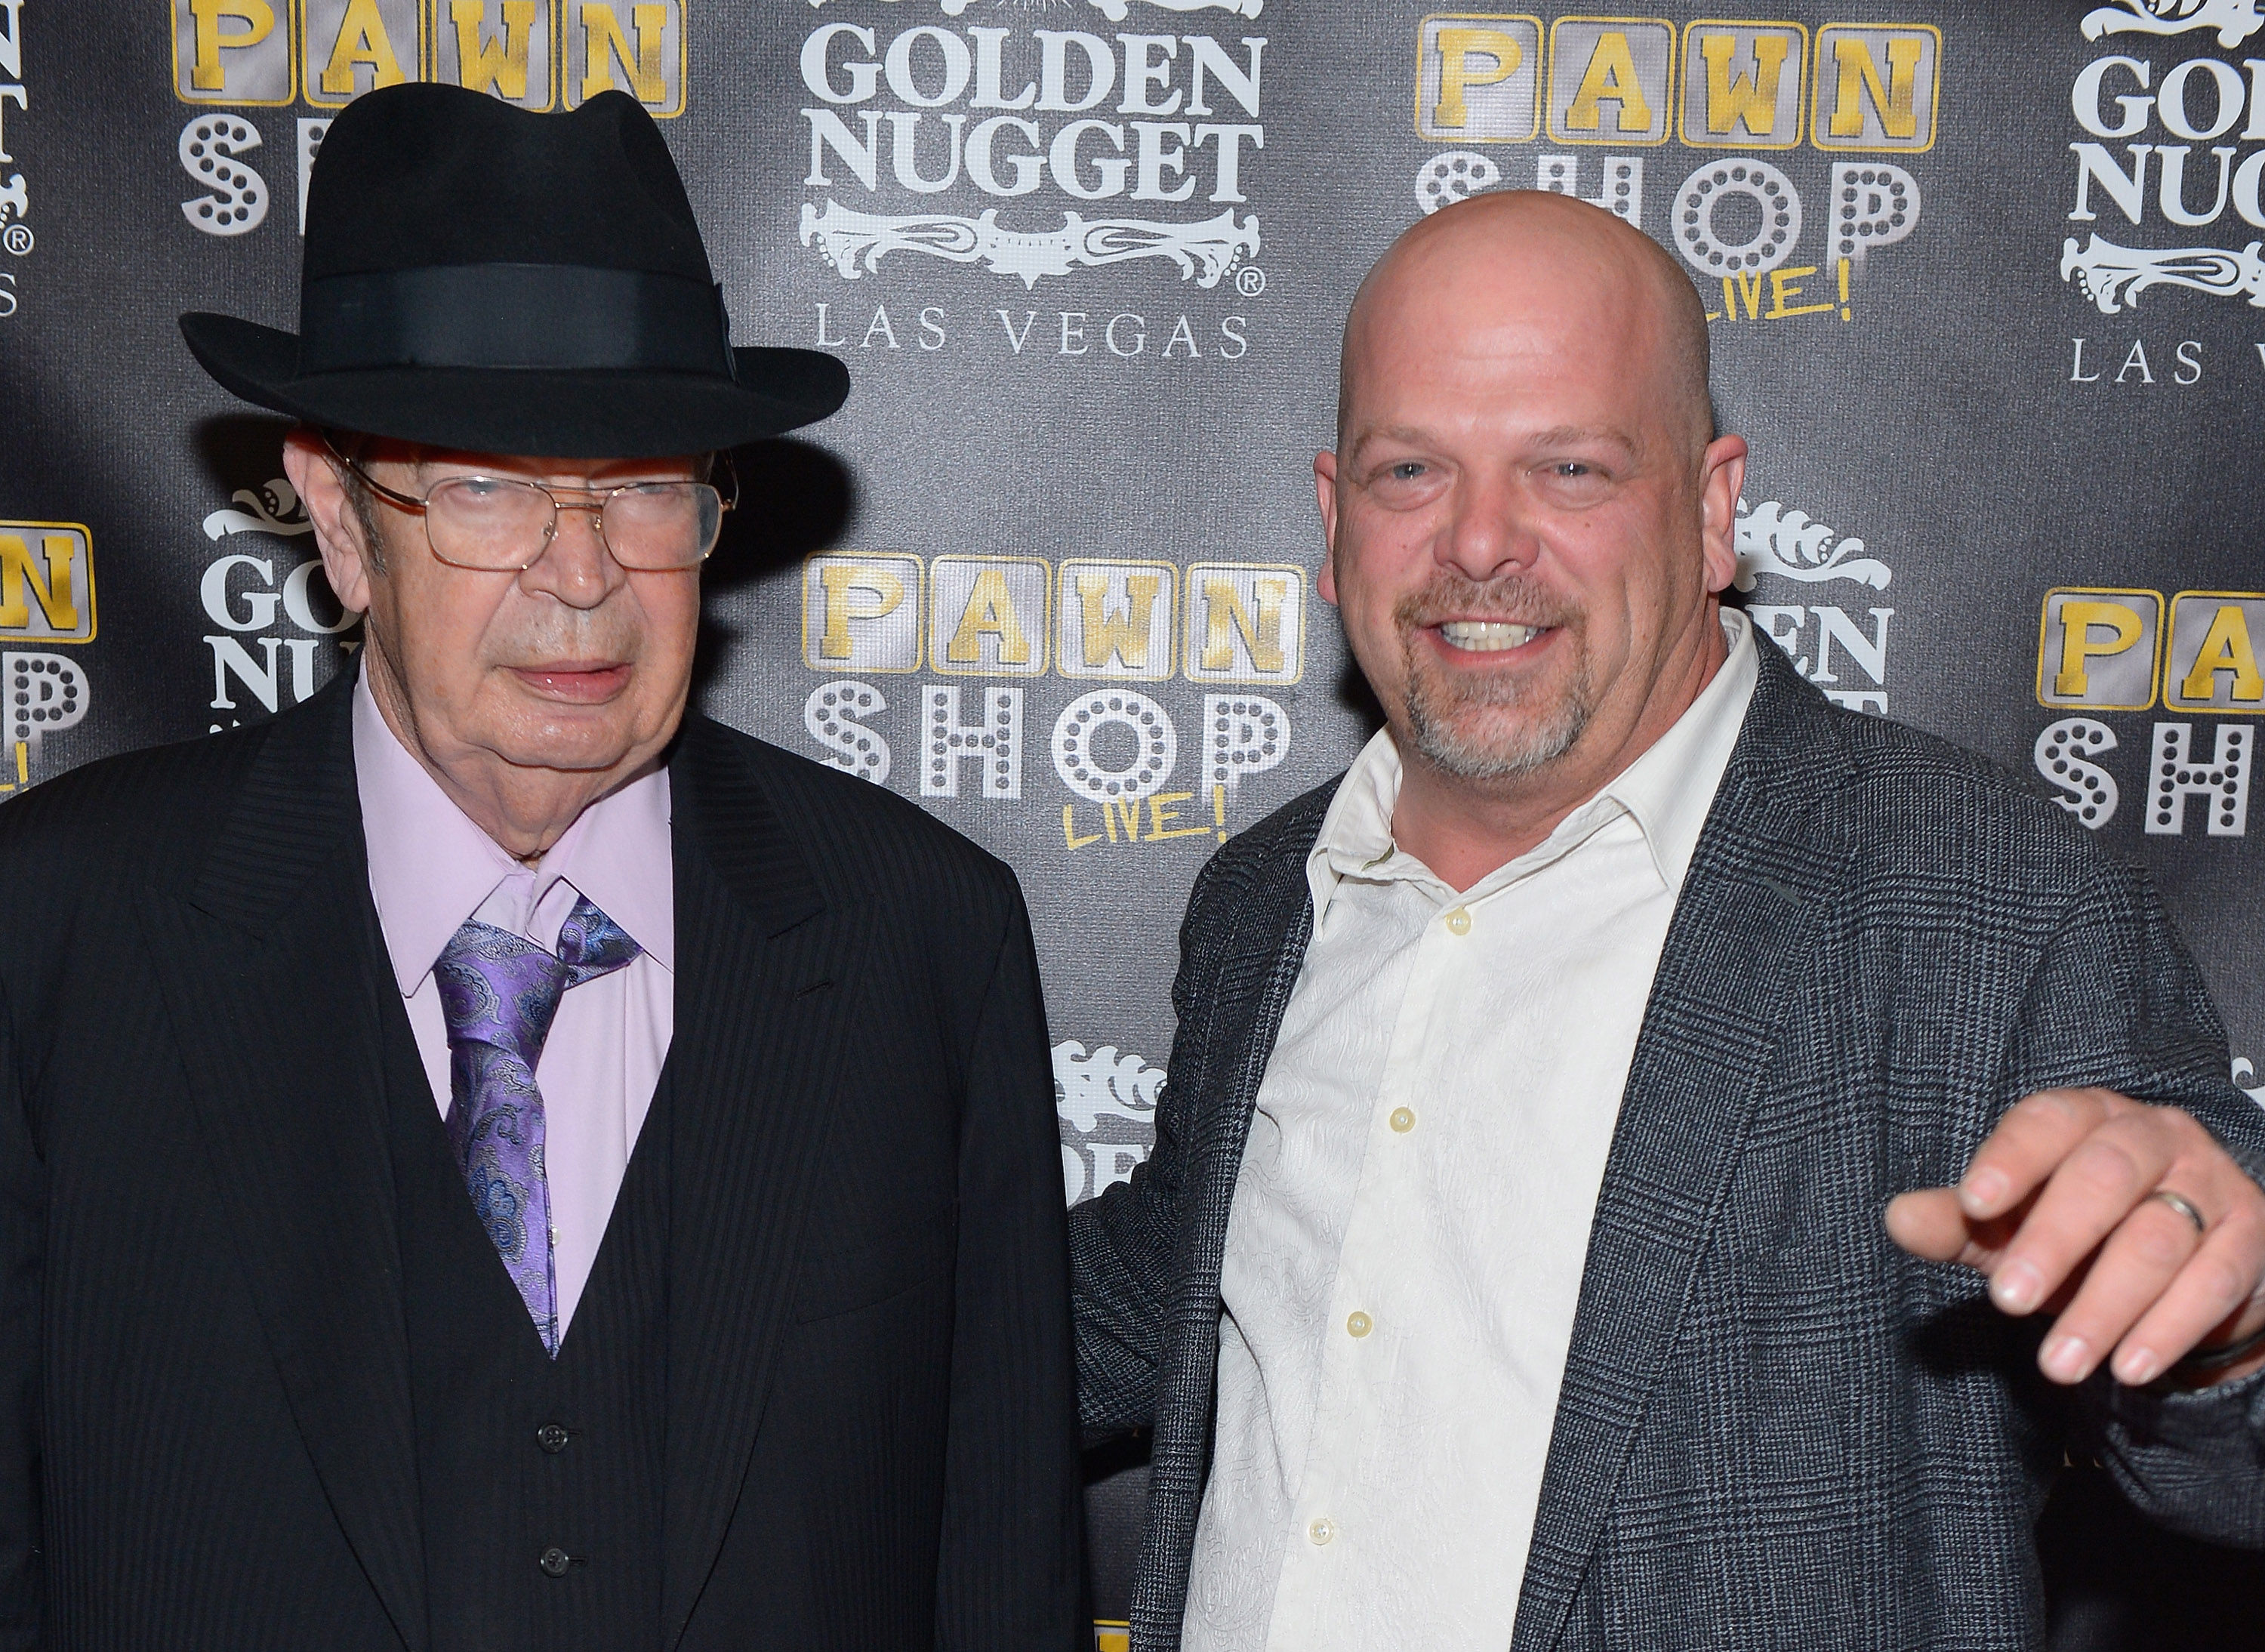 Old Man From Pawn Stars Cut Son Out Of Will GettyImages 466008459